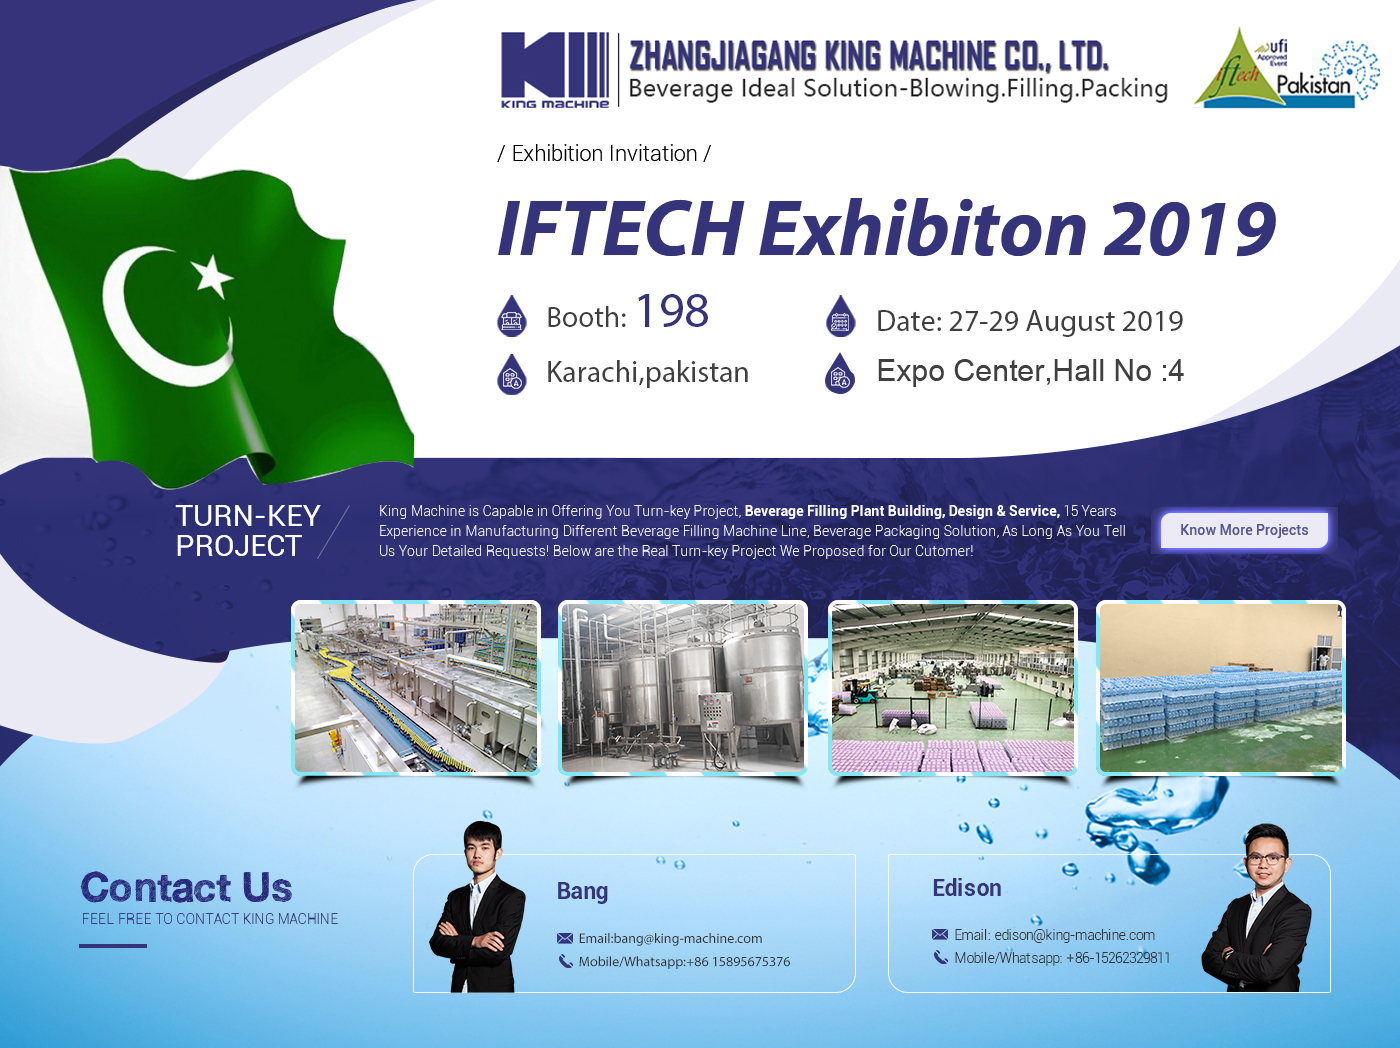 IFTECH Exhibiton 2019